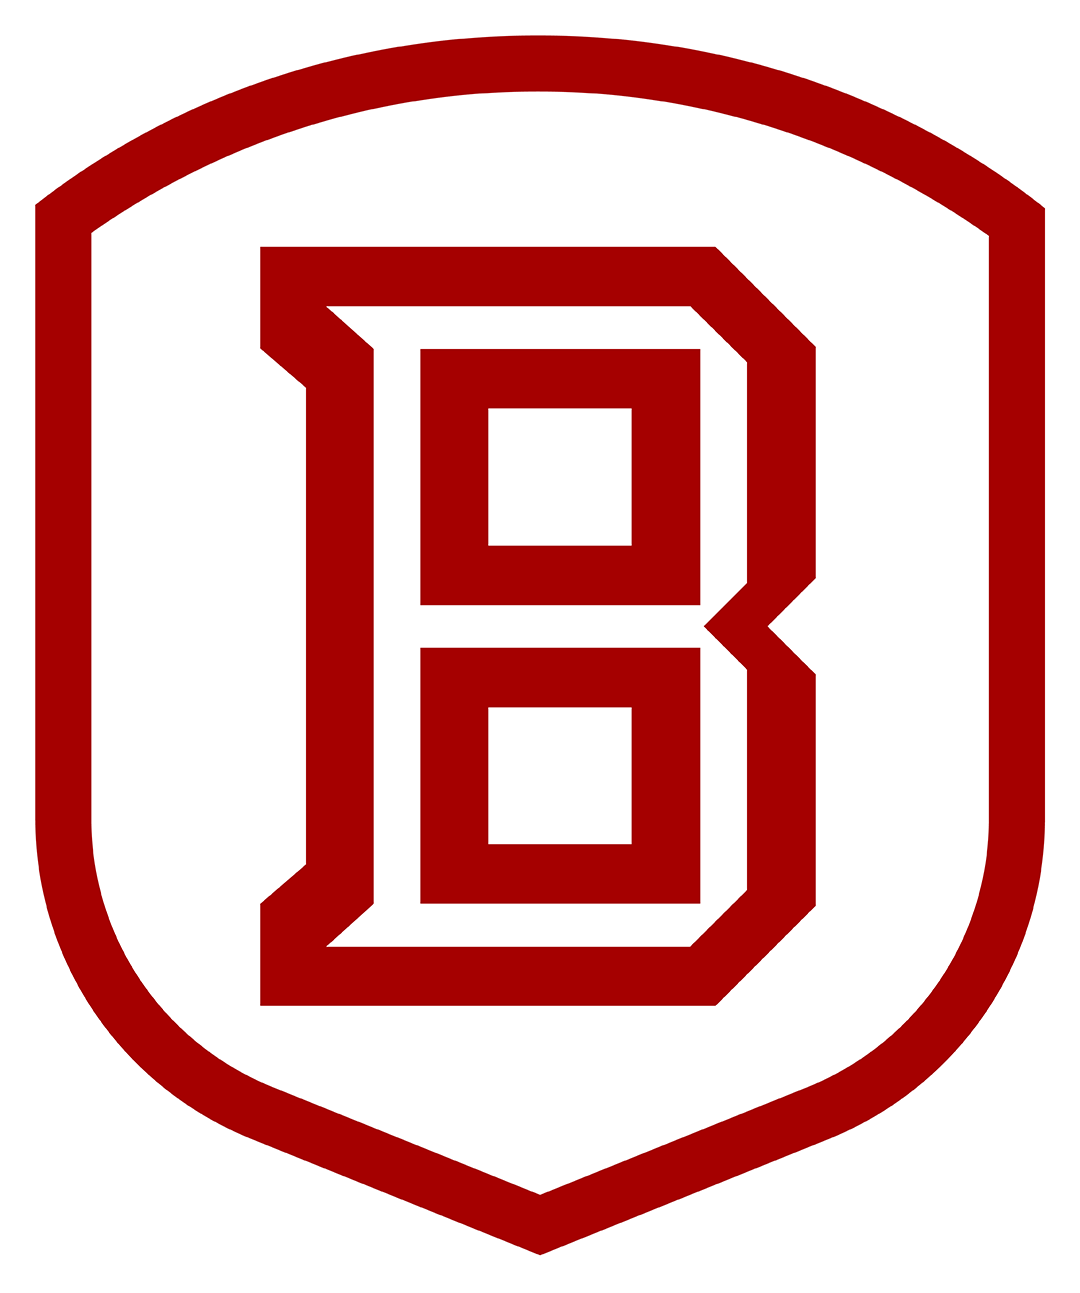 Image result for bradley logo